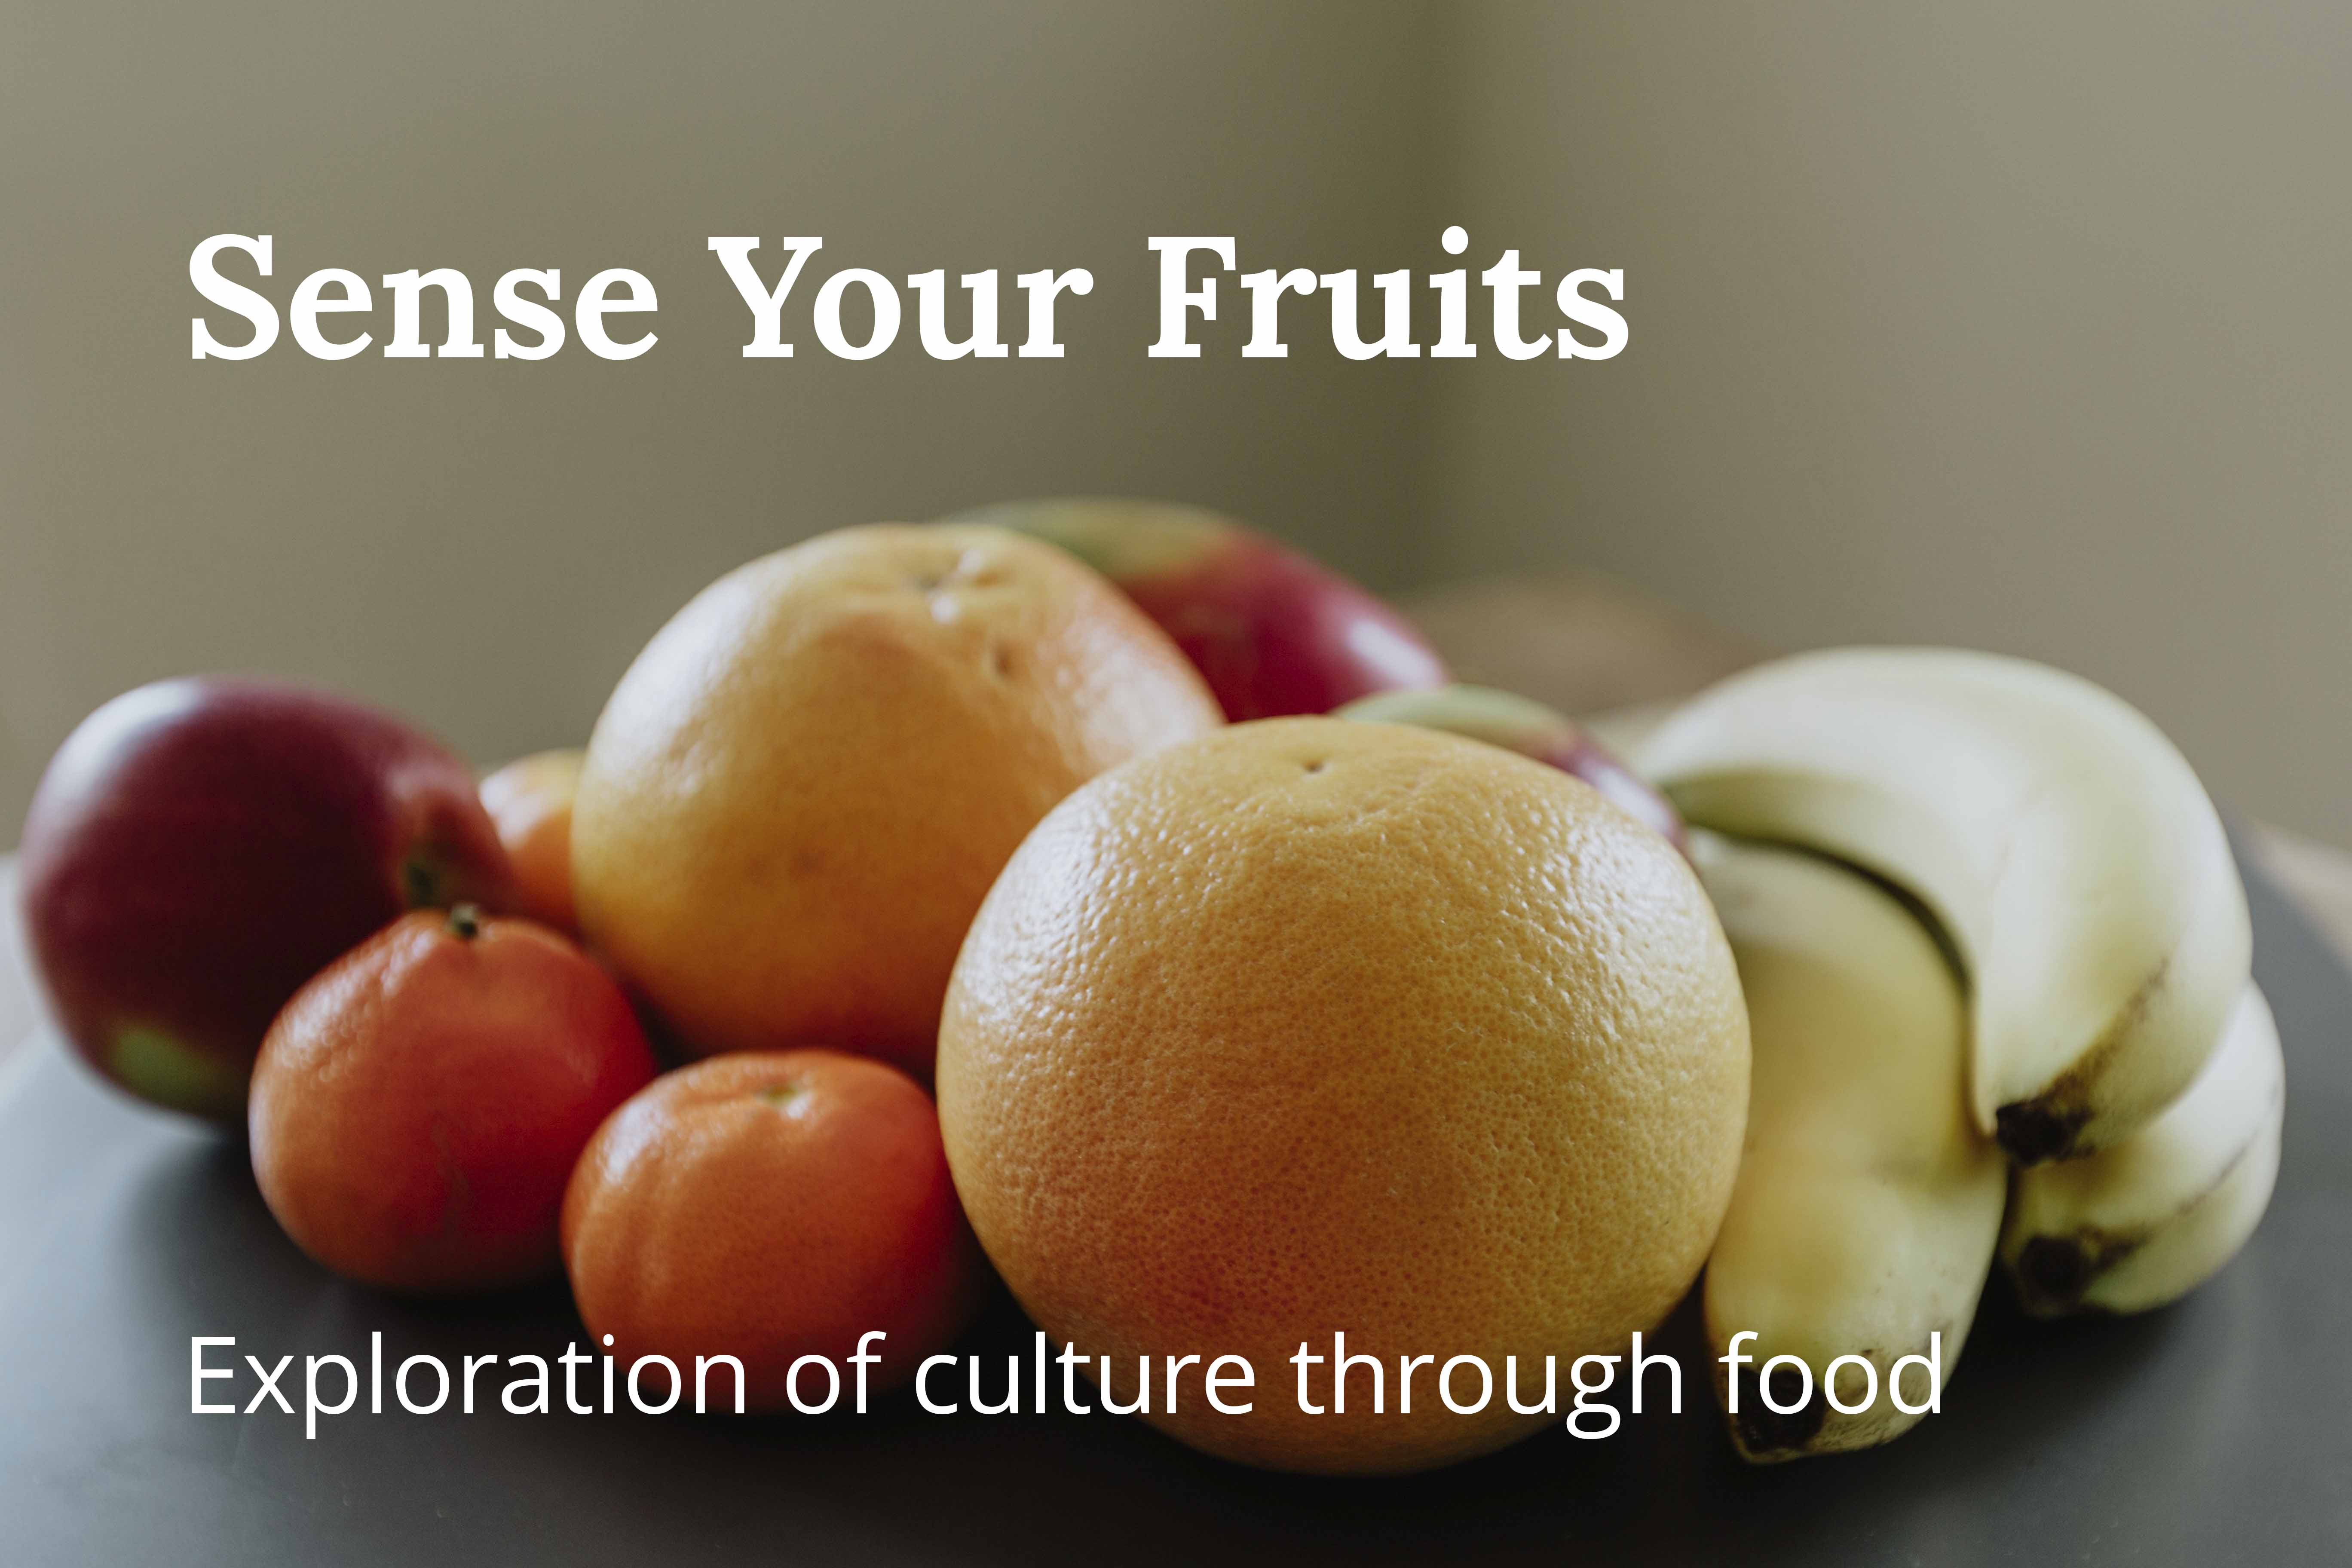 Sense your Fruits